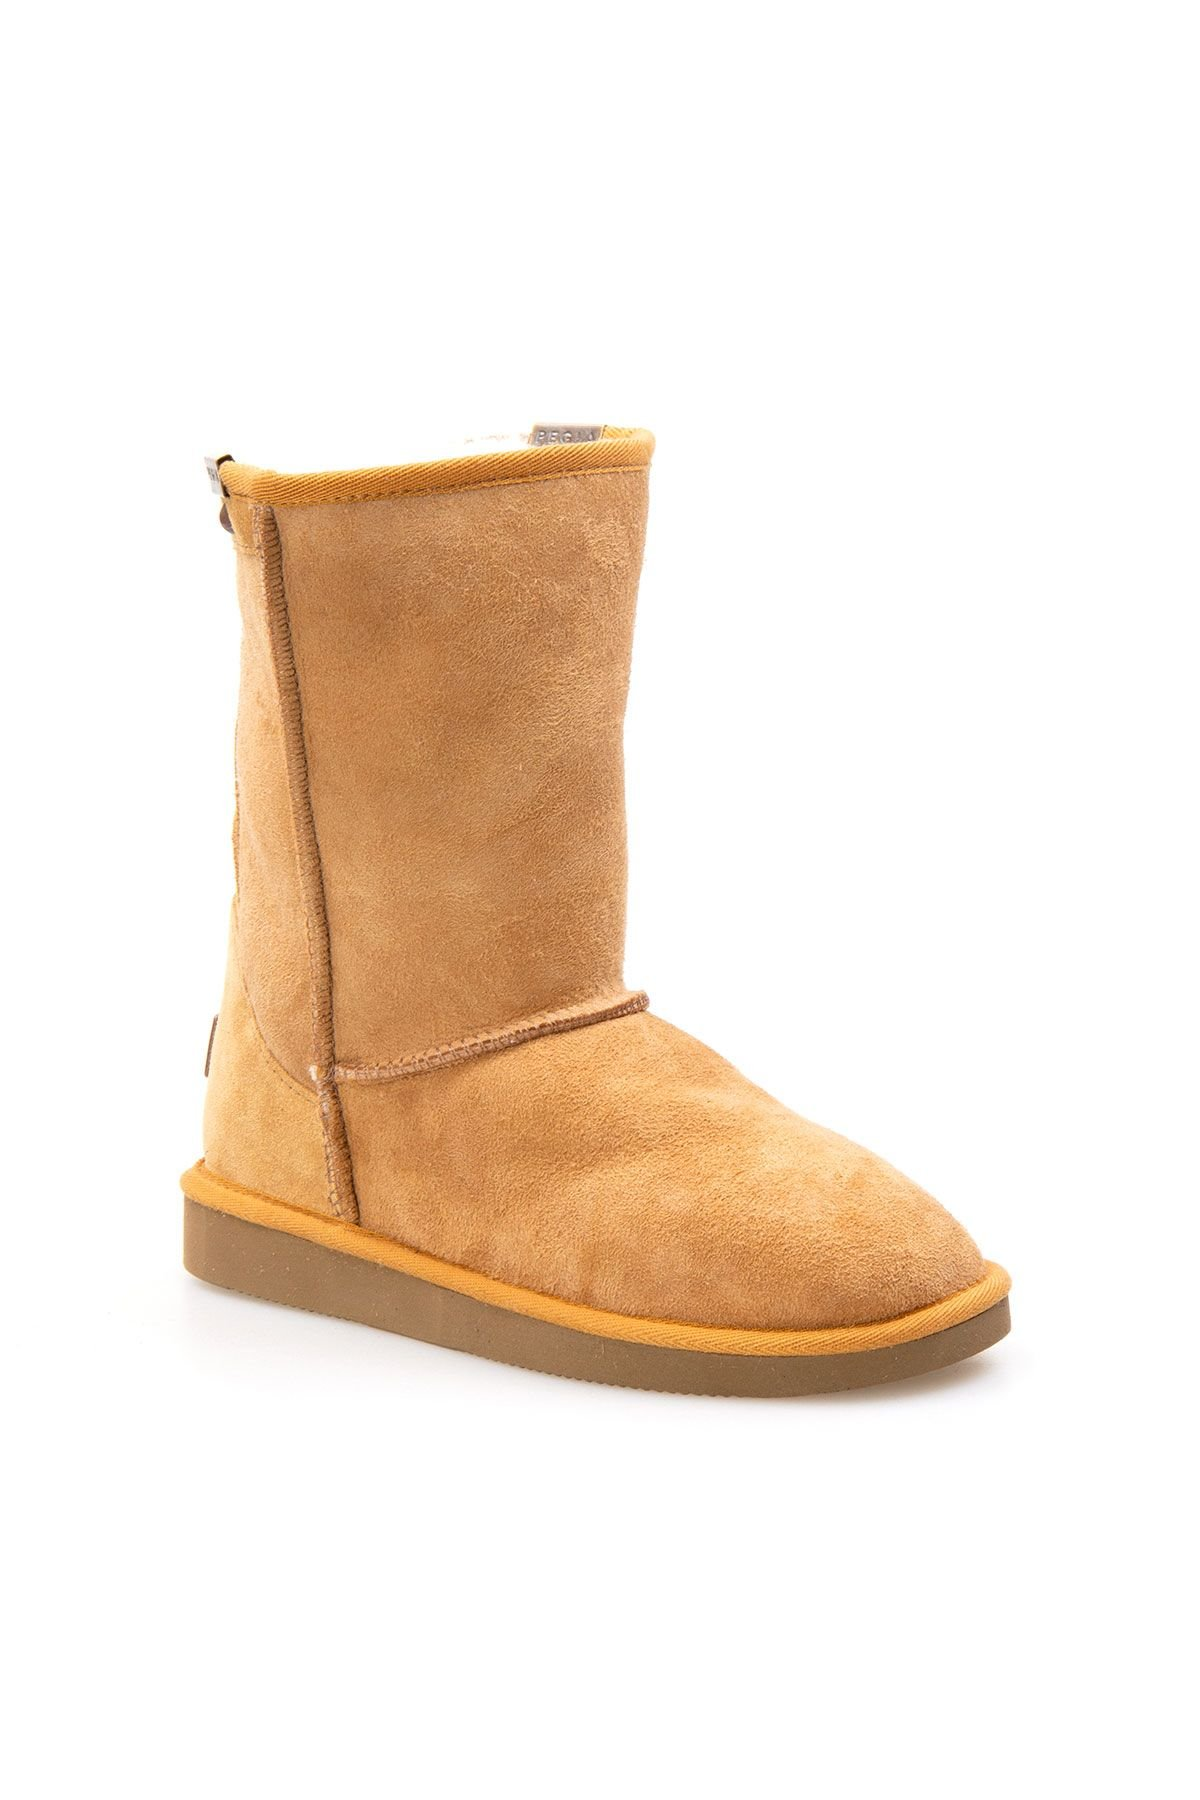 Pegia Genuine Suede Sheepskin Lined Women's Laced Boots 191052 Ginger